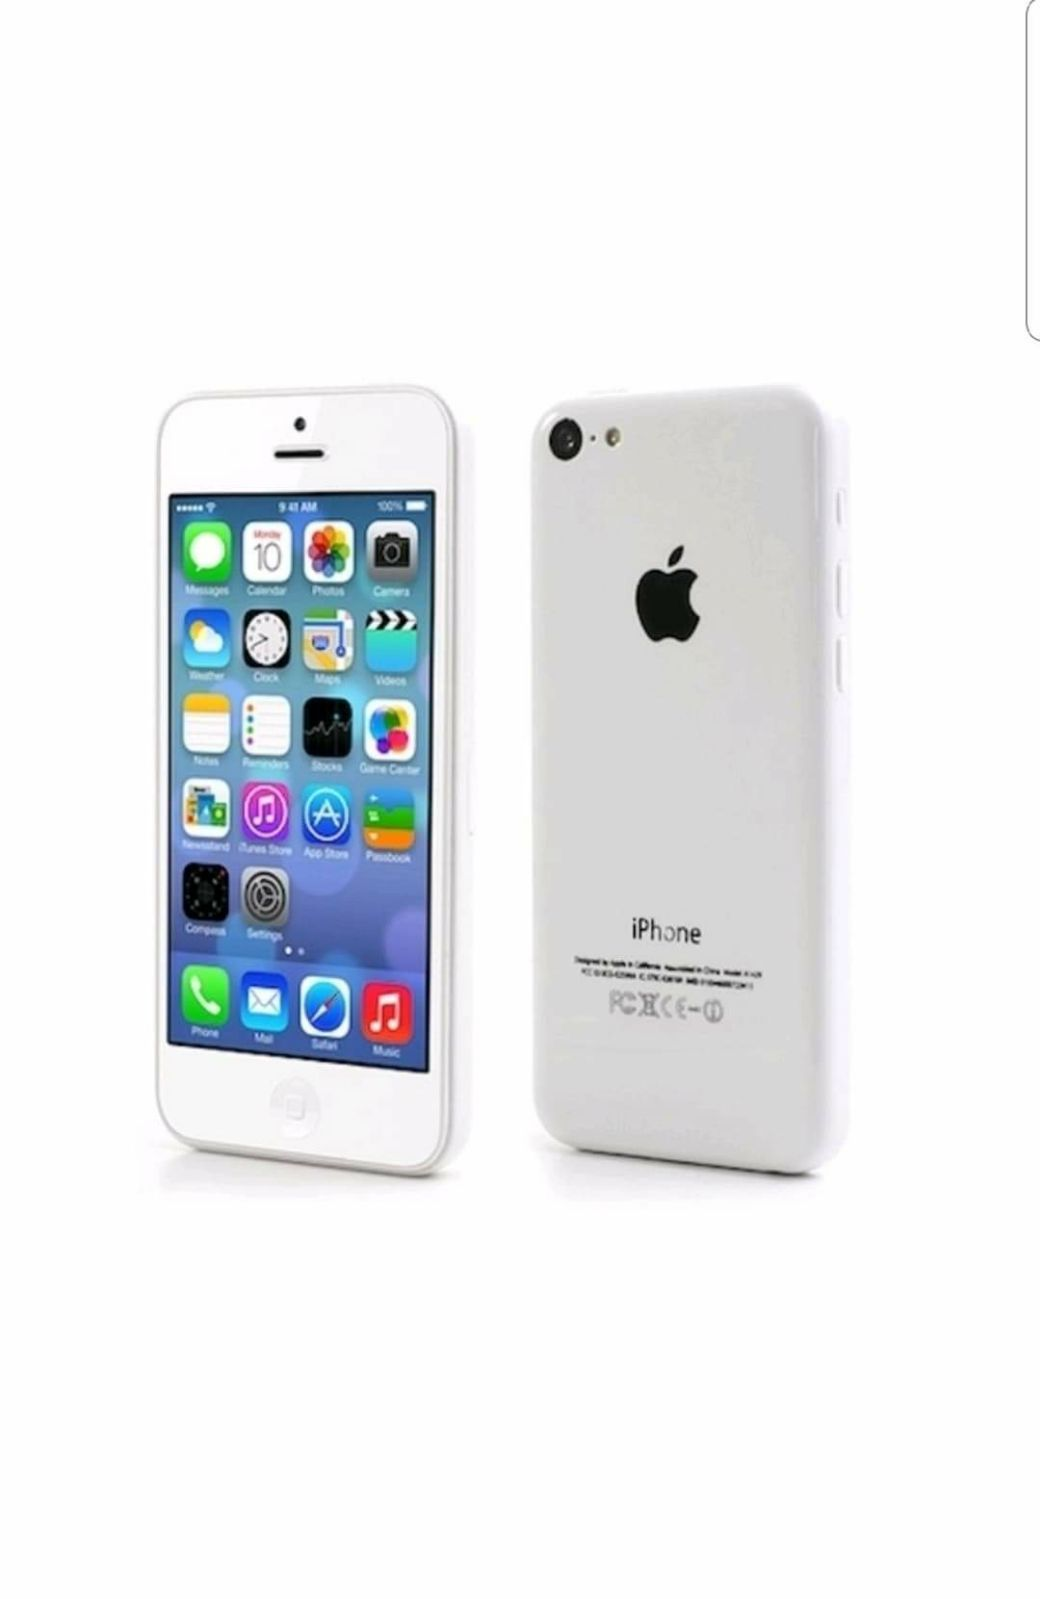 Screen Size 4 Inches Rear Camera Resolution 5 Mp Selfie Camera Resolution 1 2 Mp Network At T Description The Iphone 5c Models Iphone Iphone 5c Retina Display